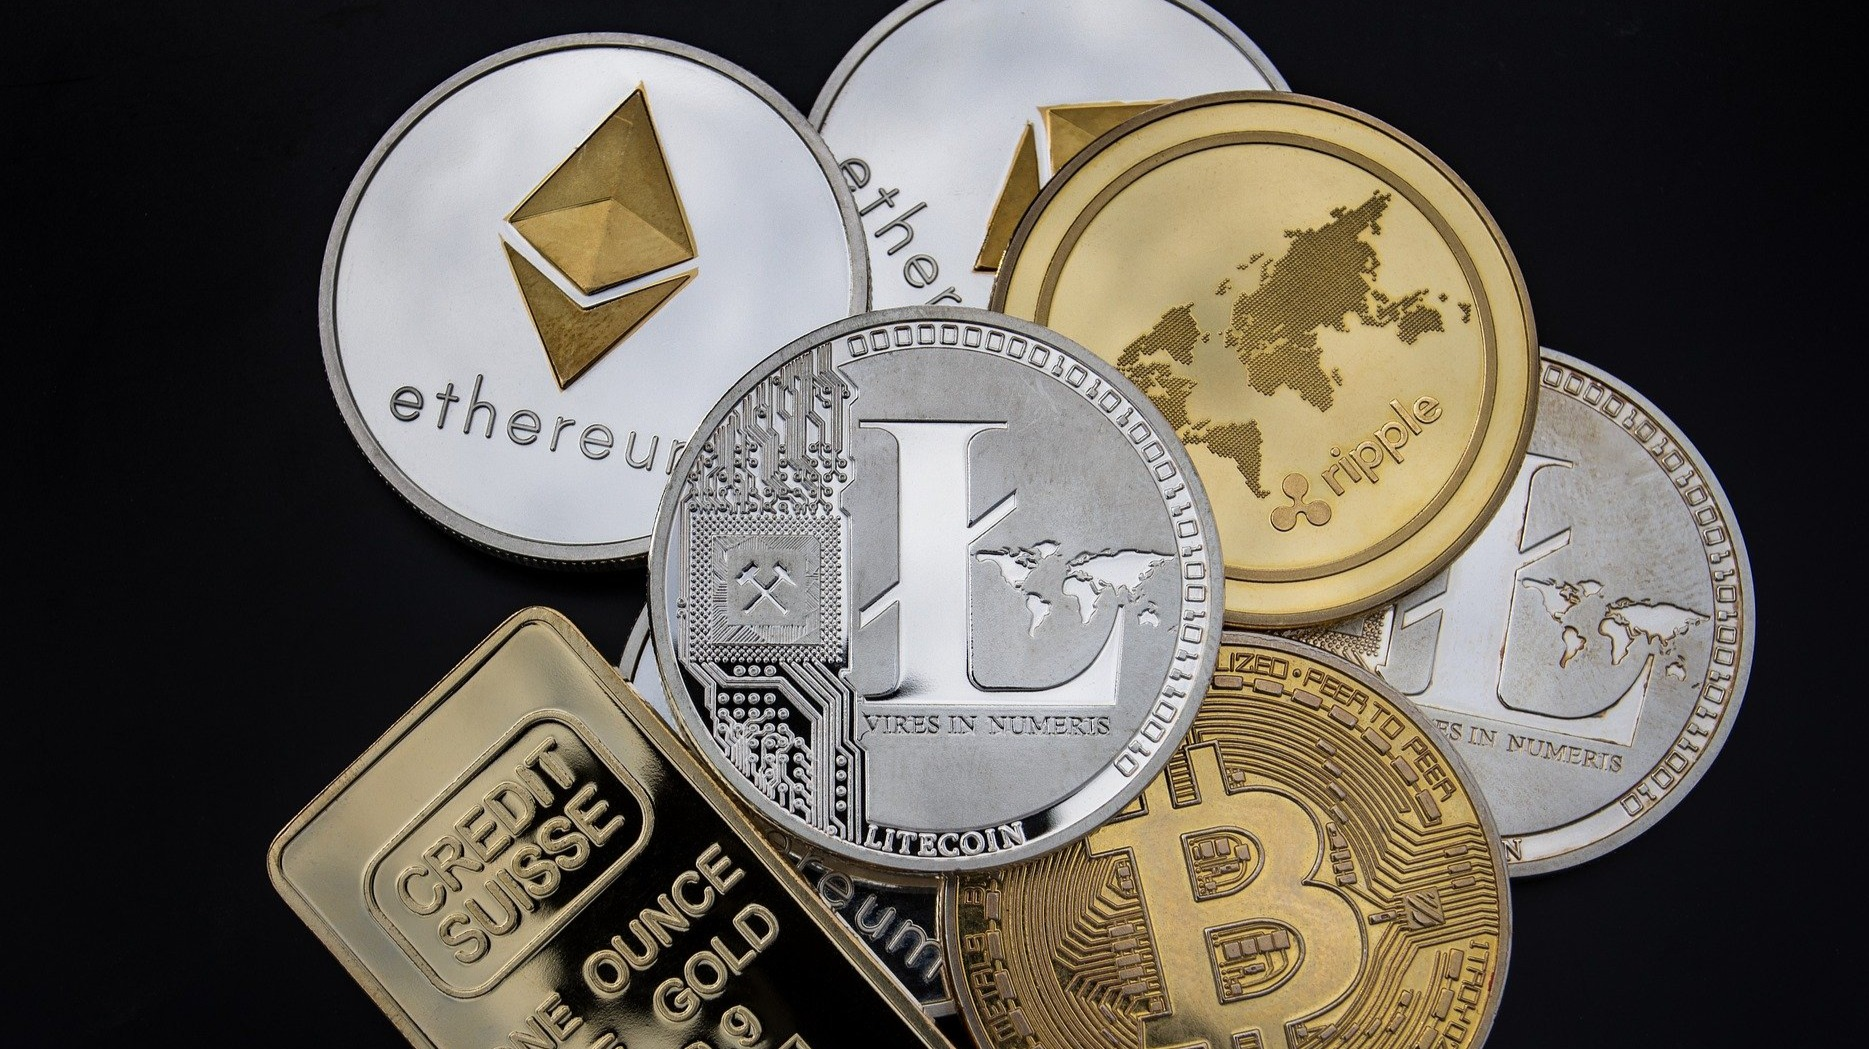 Top 5 cryptocurrencies that I regret not having invested